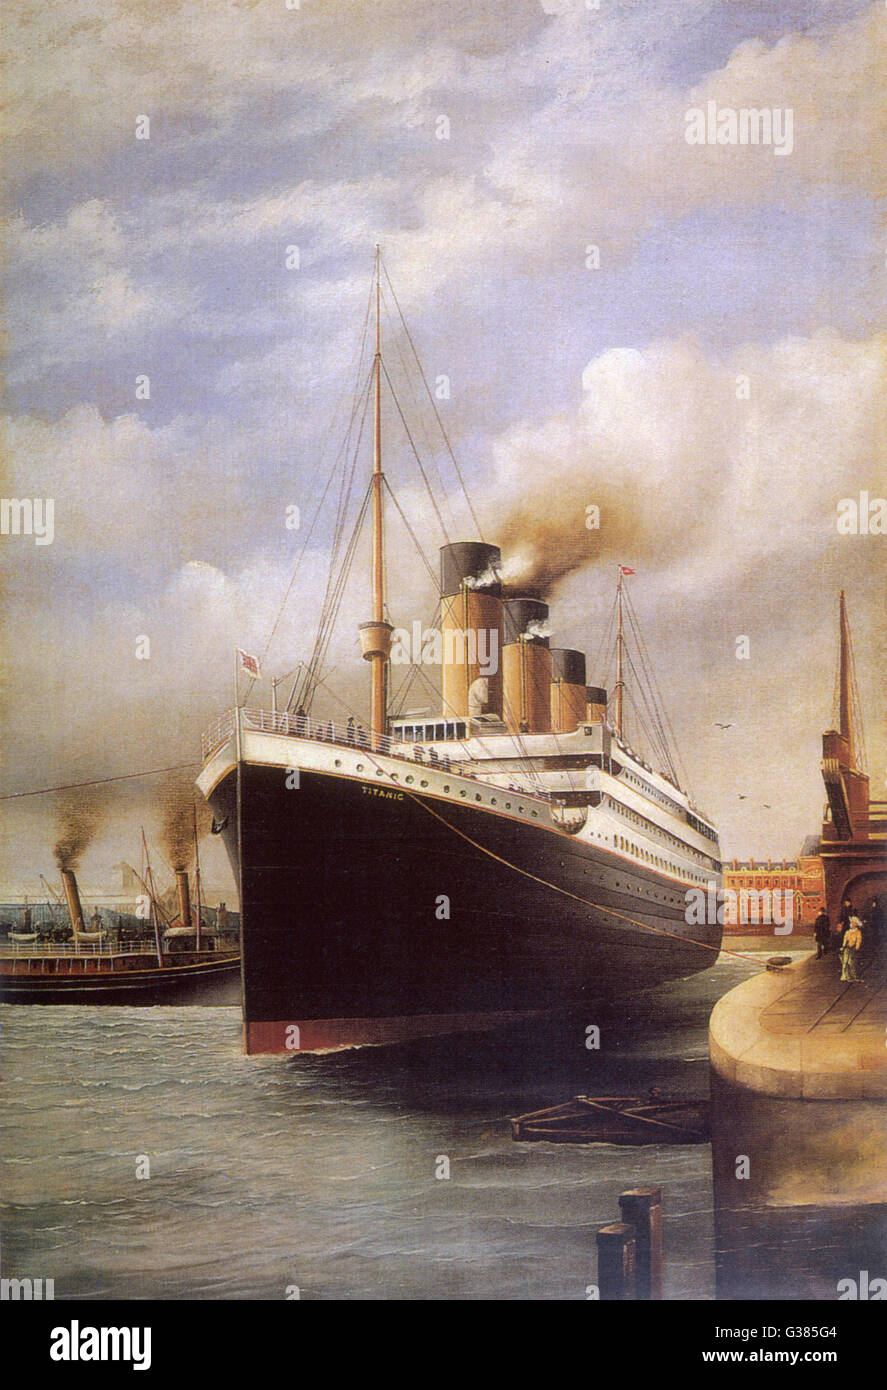 The Titanic docked before her disastrous voyage         Date: 1912 - Stock Image